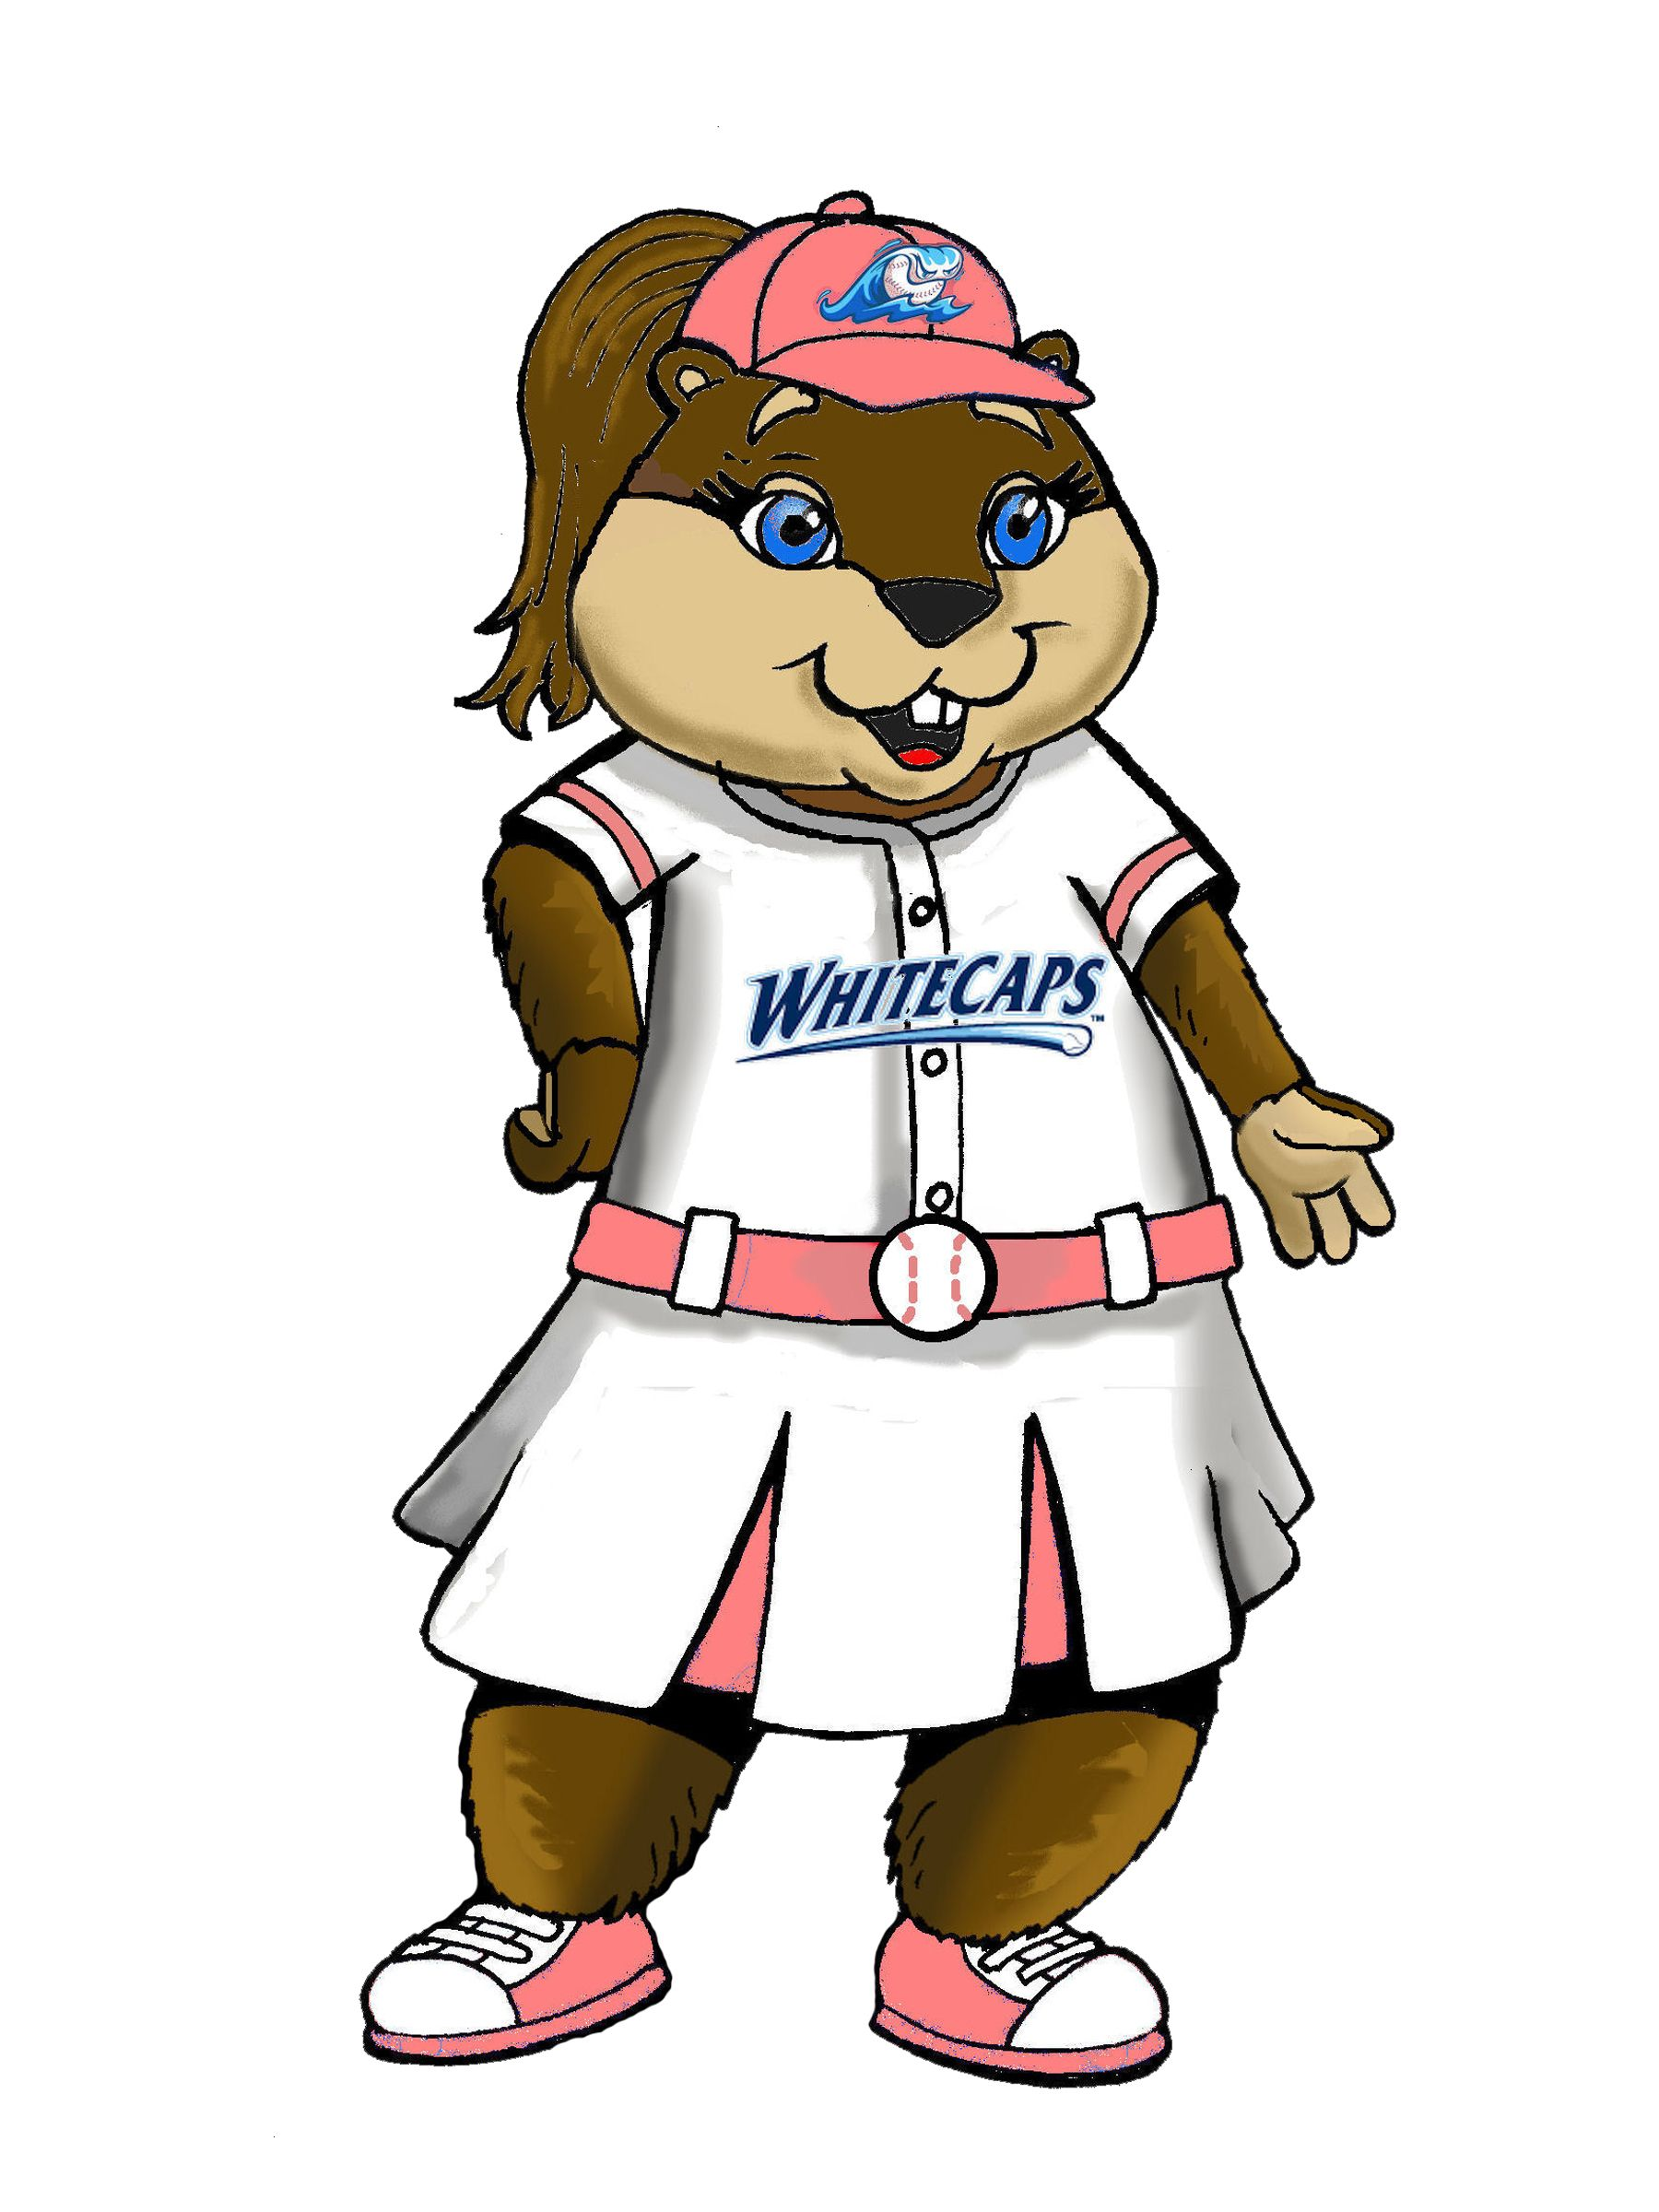 Roxy the River Rascal West Michigan Whitecaps Content